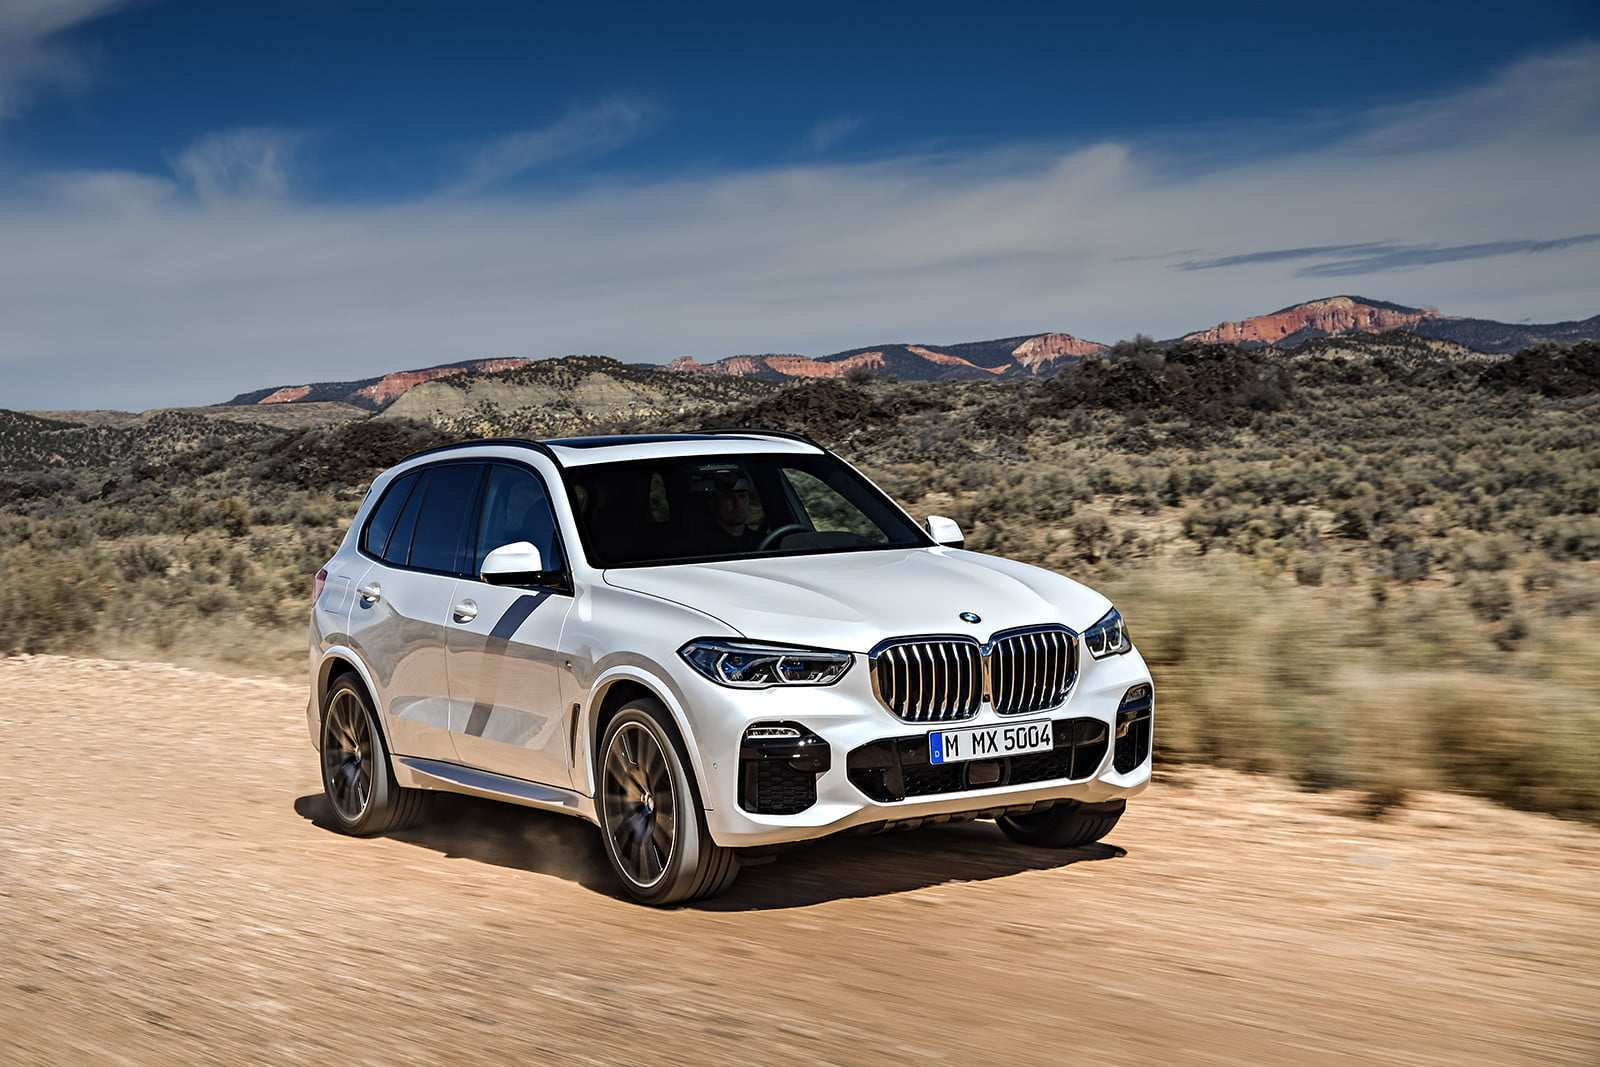 54 Gallery of Review Of 2019 Bmw X5 Performance Specs for Review Of 2019 Bmw X5 Performance